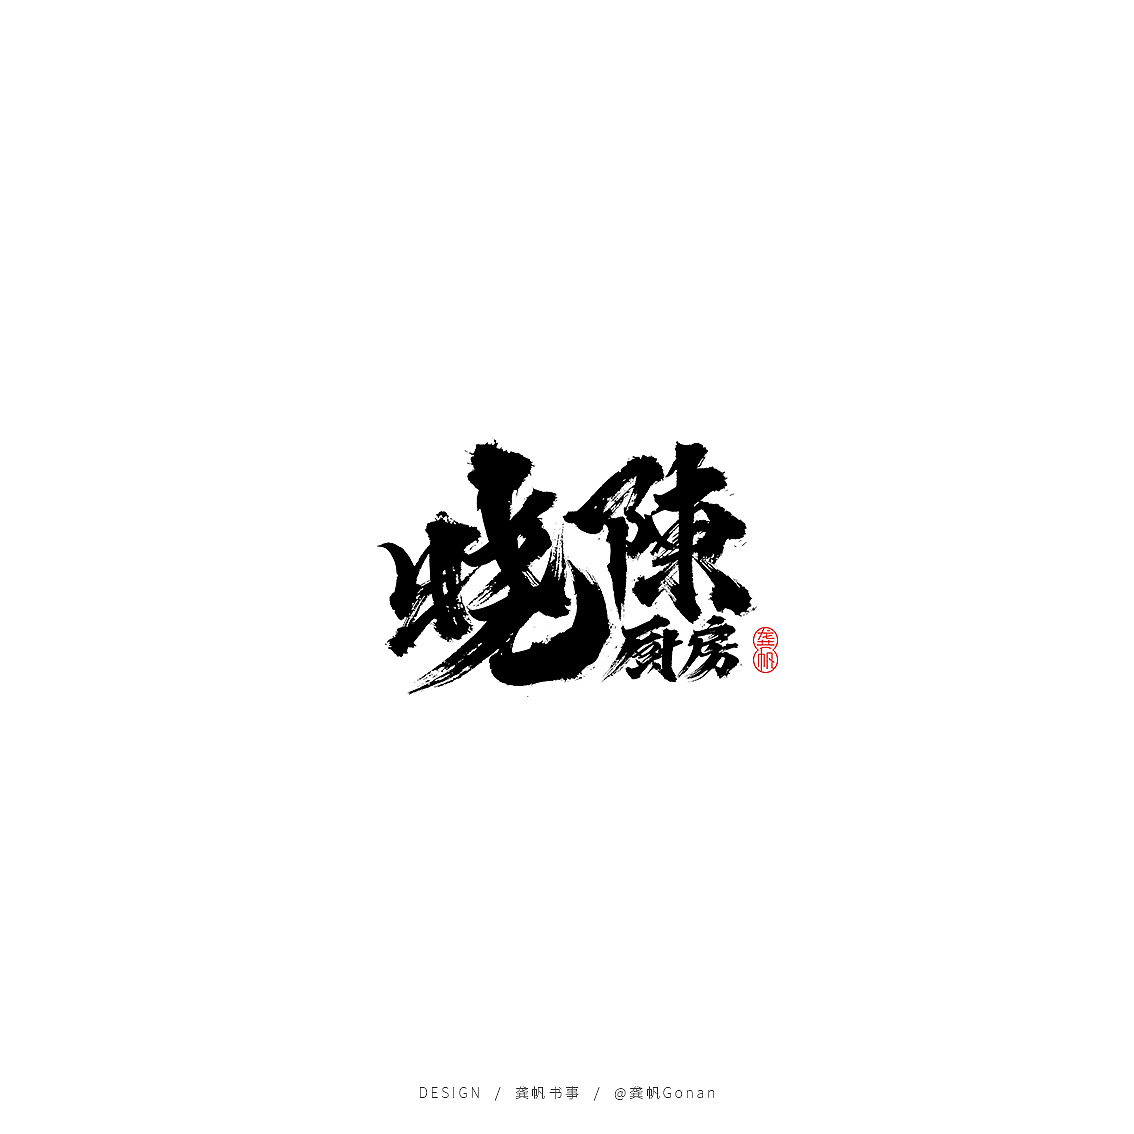 11P Chinese traditional calligraphy brush calligraphy font style appreciation #.1765